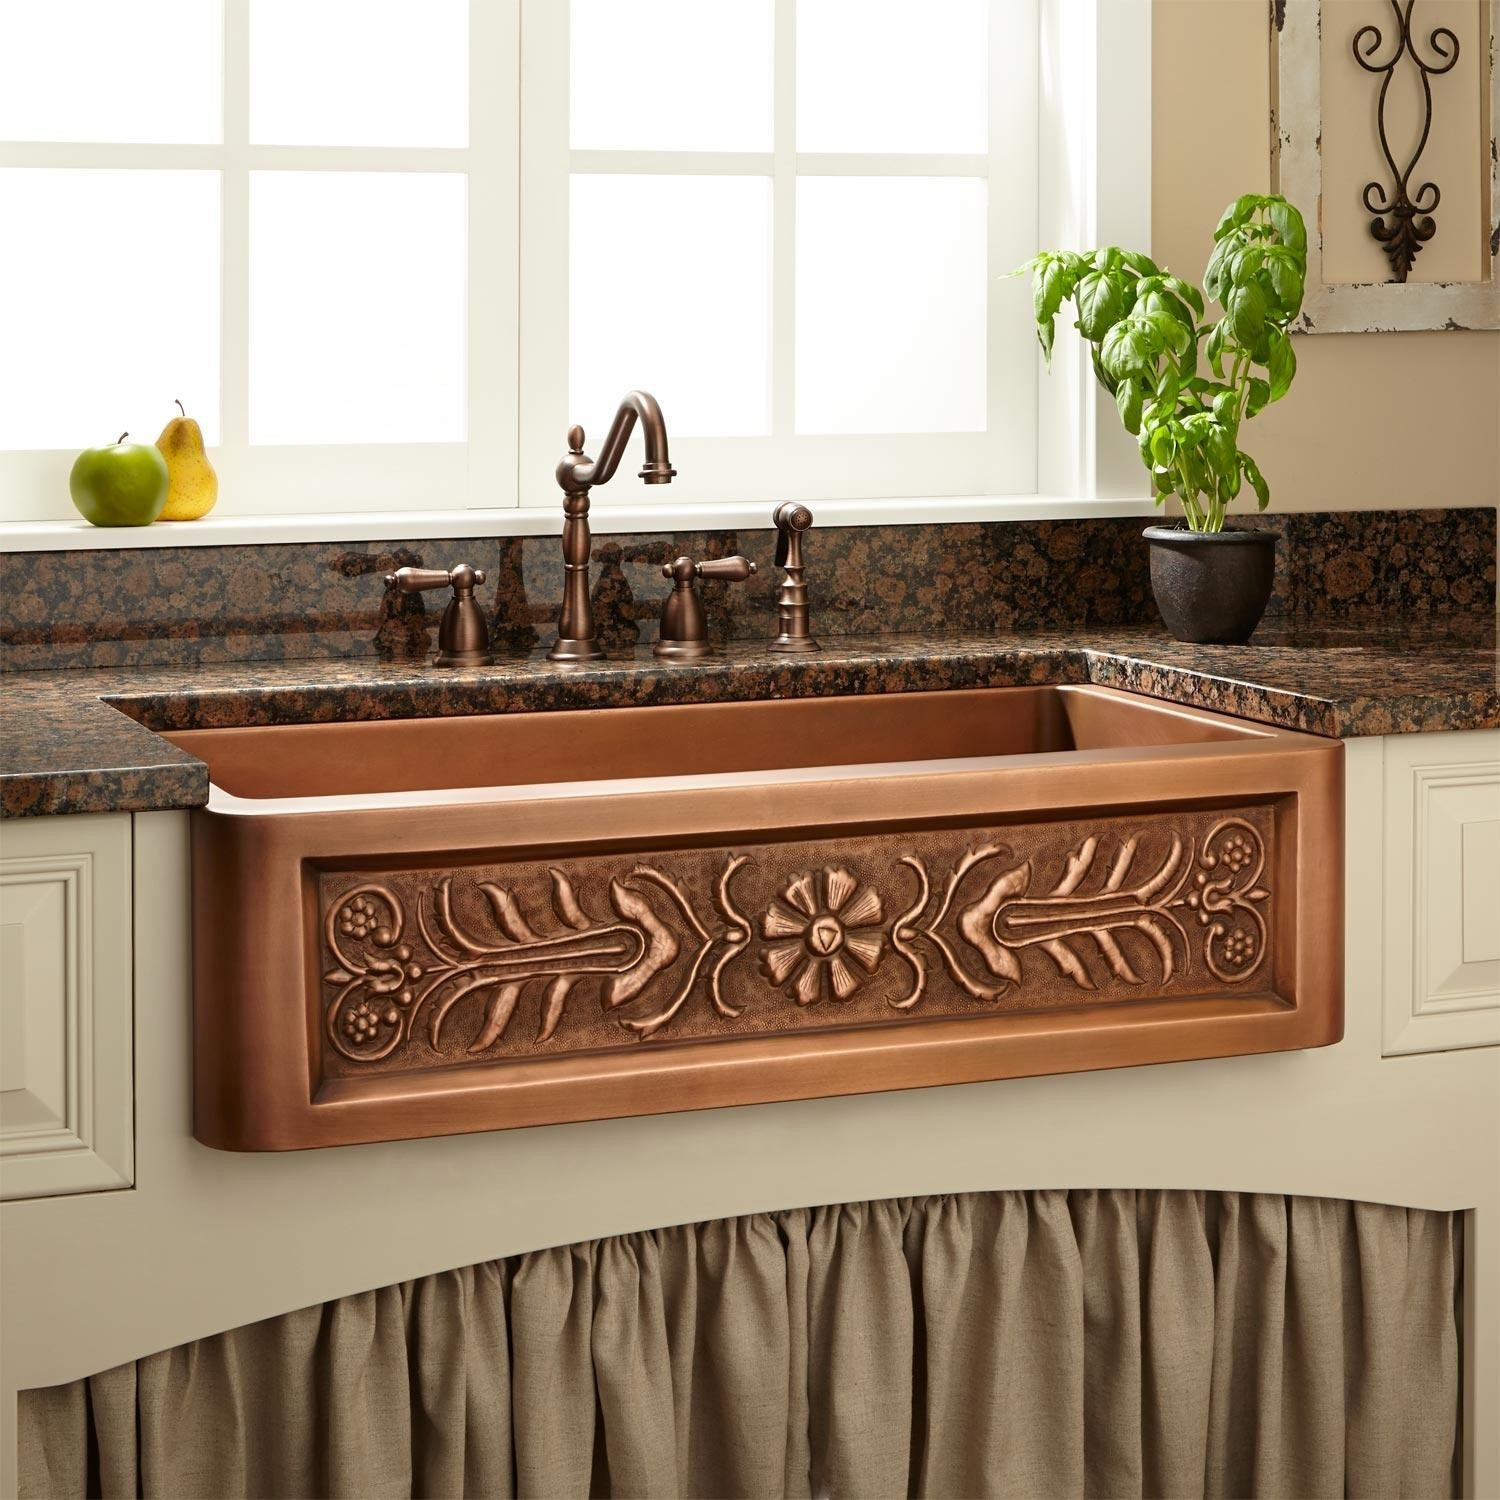 Copper Kitchen Decorative Items